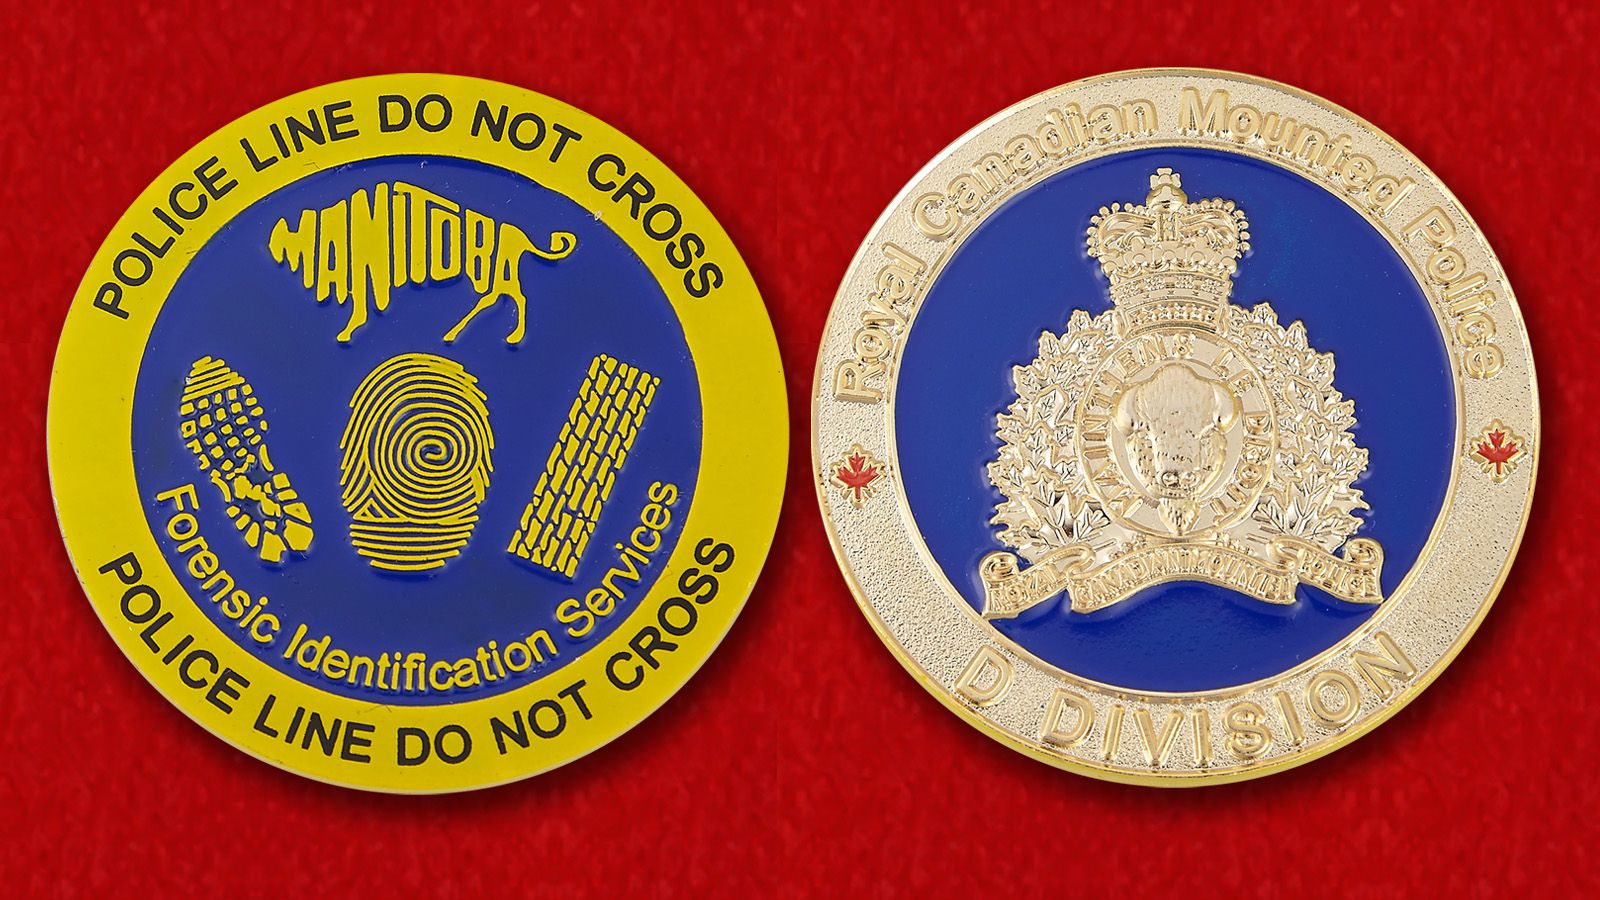 Manitoba Police Challenge Coin - obverse and reverse